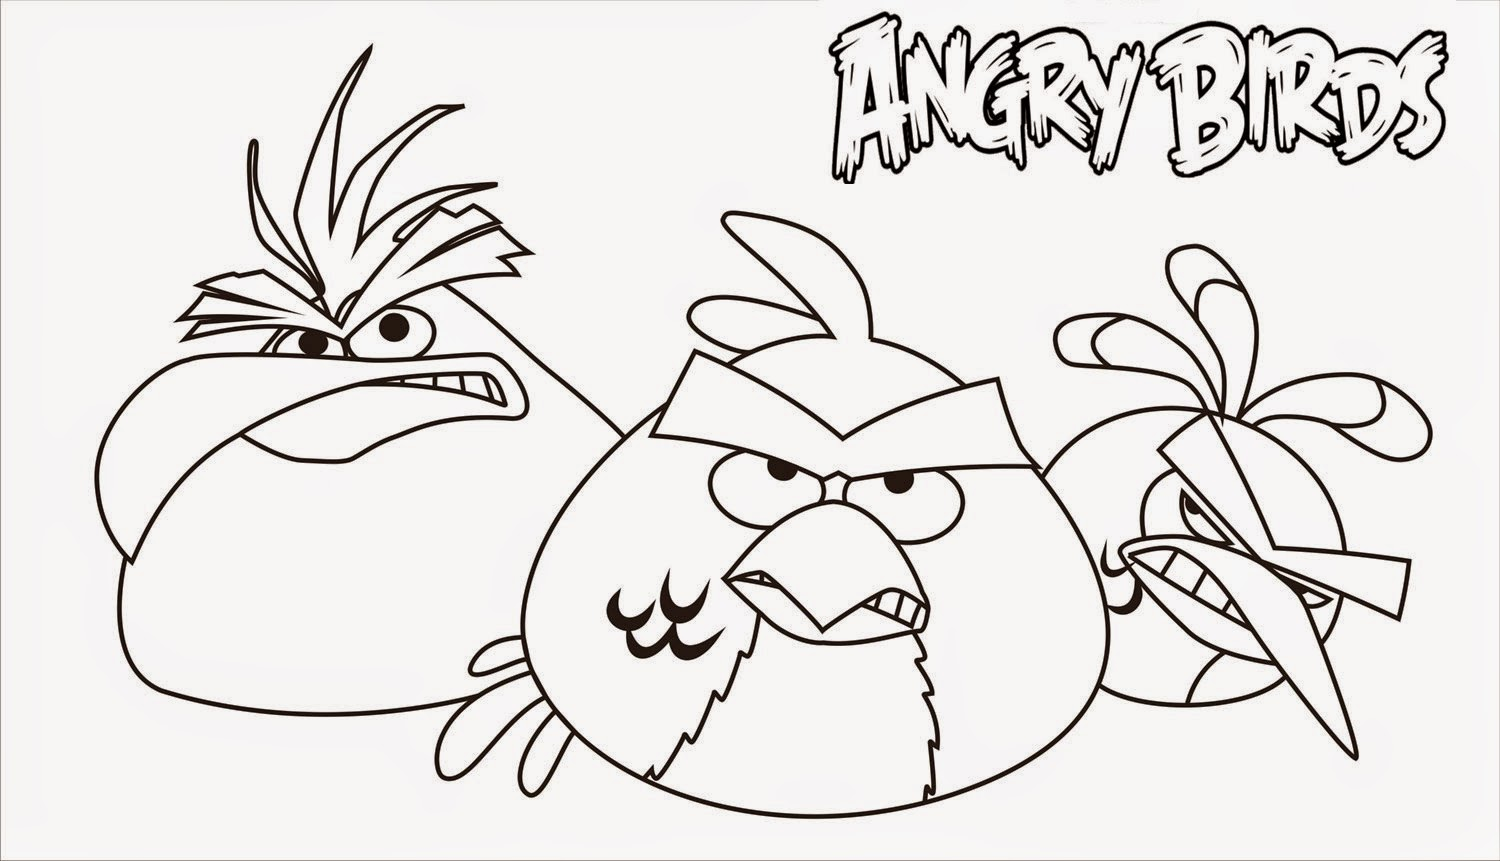 Angry Birds Coloring Drawing Free wallpaper